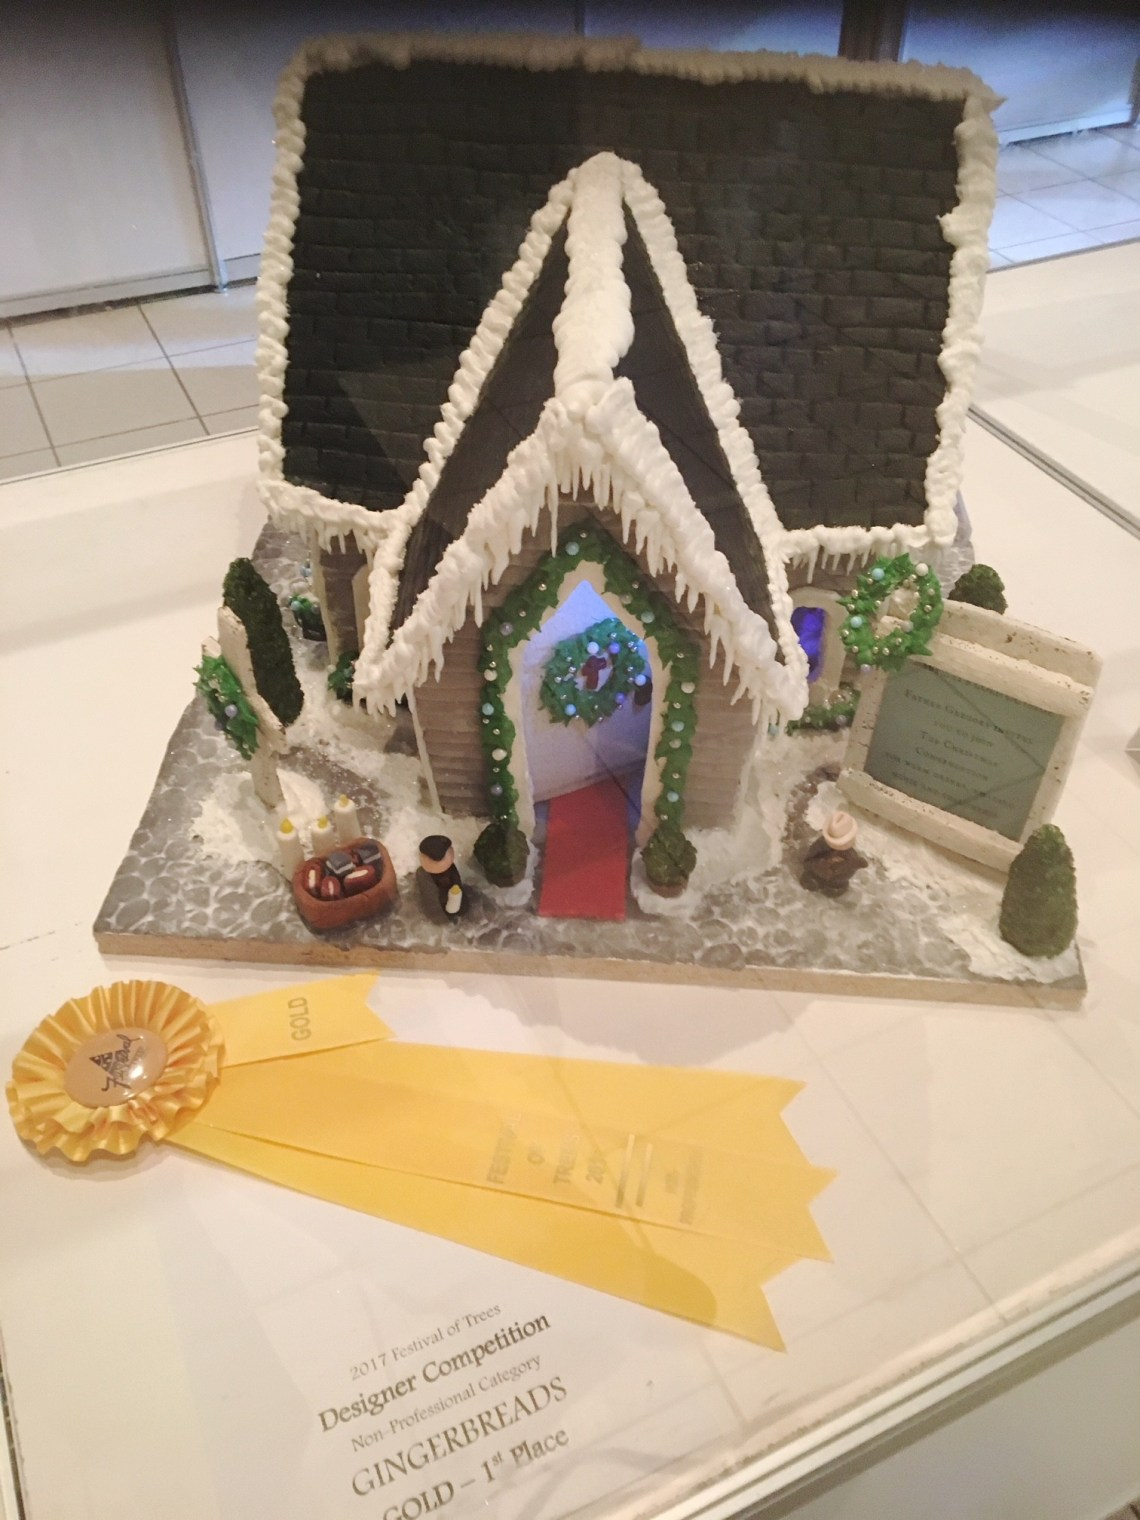 The Christmas Congregation Gingerbread Church takes the GOLD at the Festival of Trees in Edmonton in 2017